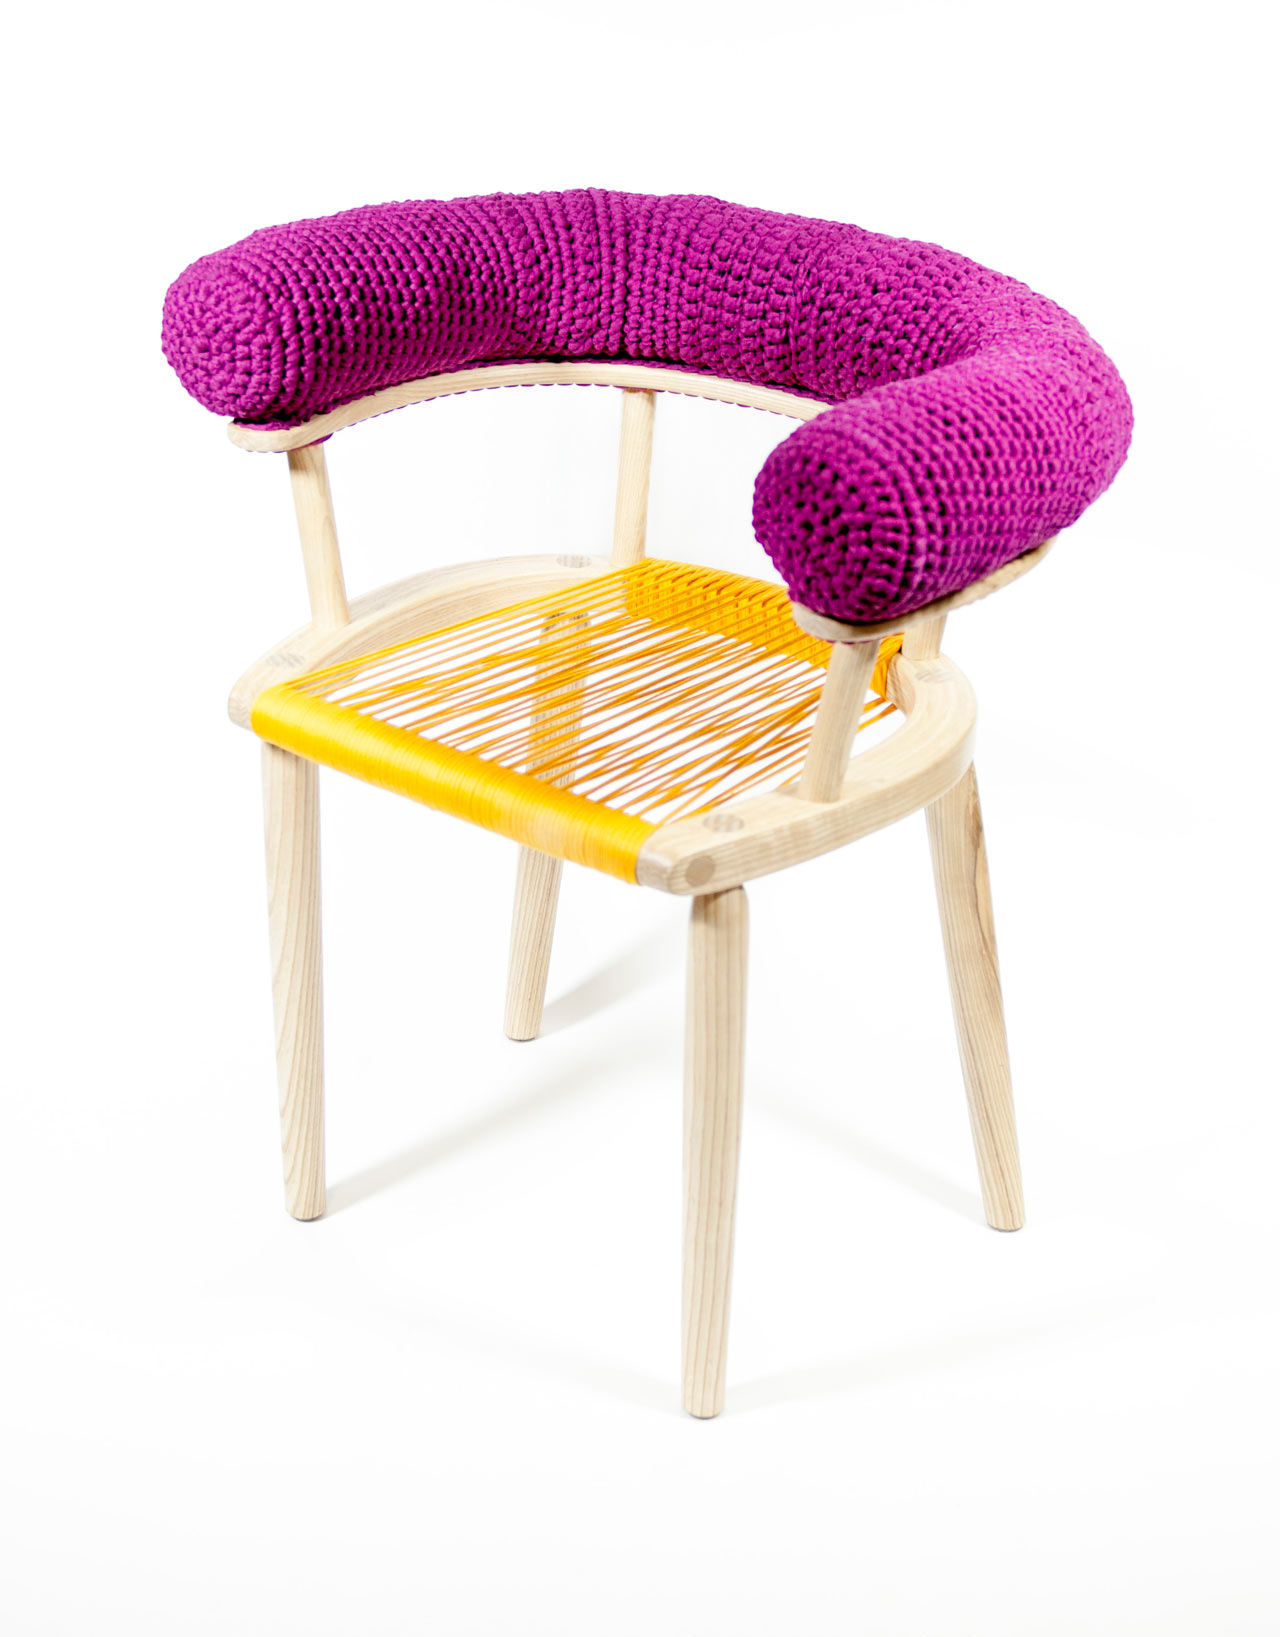 chair accessories design folding beds handmade furniture and from veegadesign